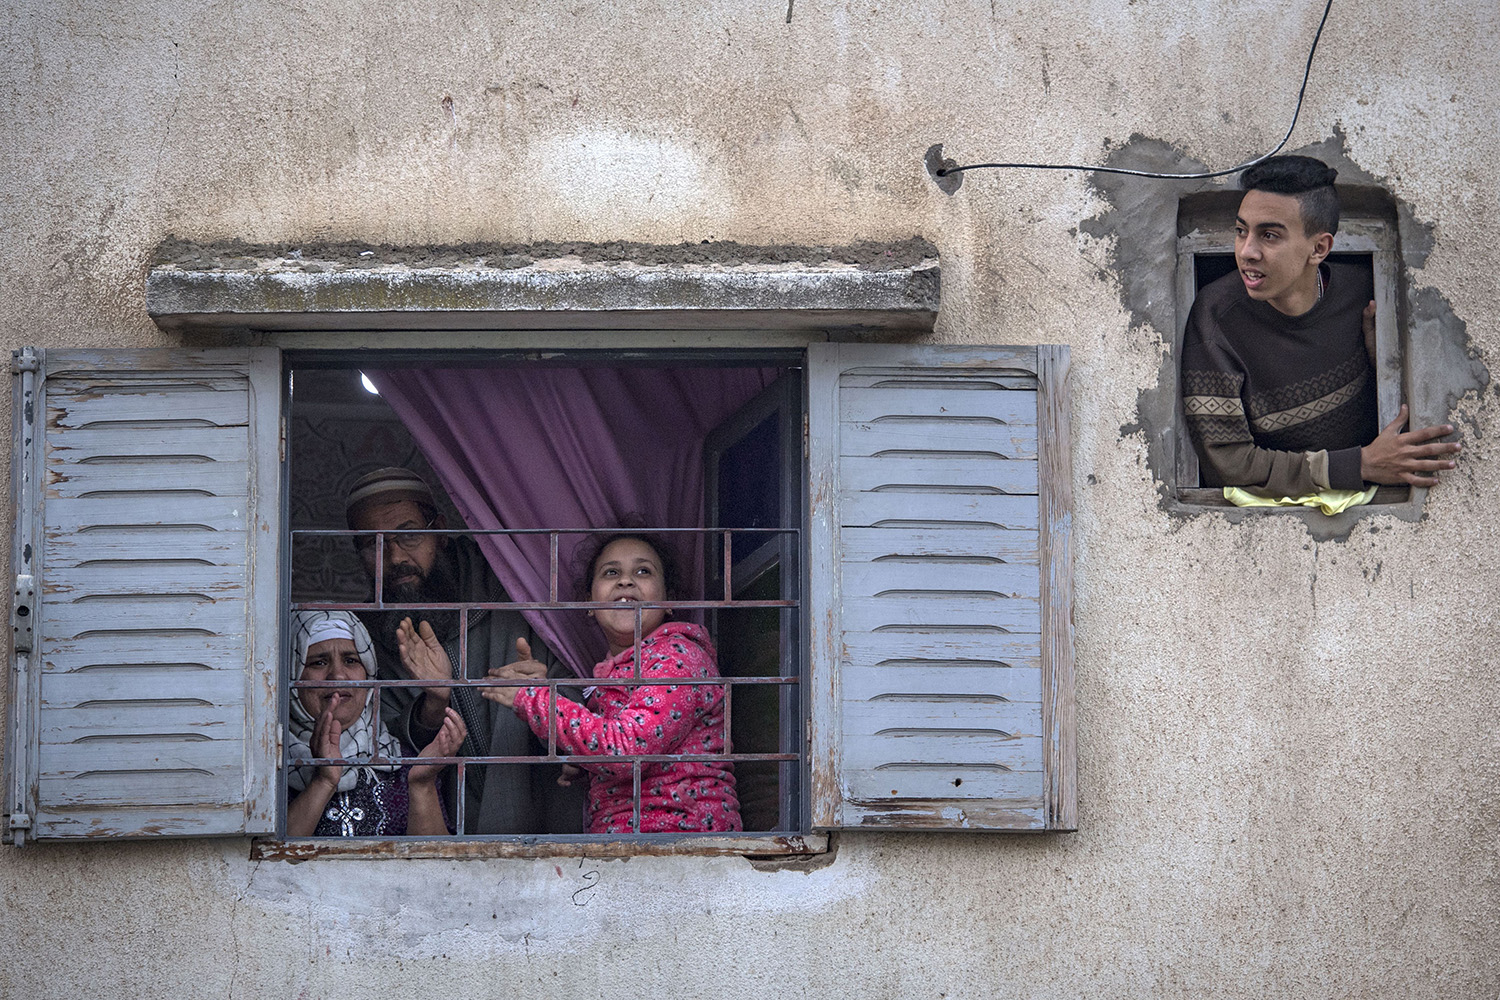 Moroccans confined at home in the Rabat district of Takadoum thank authorities from their windows as security forces and health workers instruct people to remain at home as a measure against the coronavirus pandemic on March 25. FADEL SENNA/AFP via Getty Images